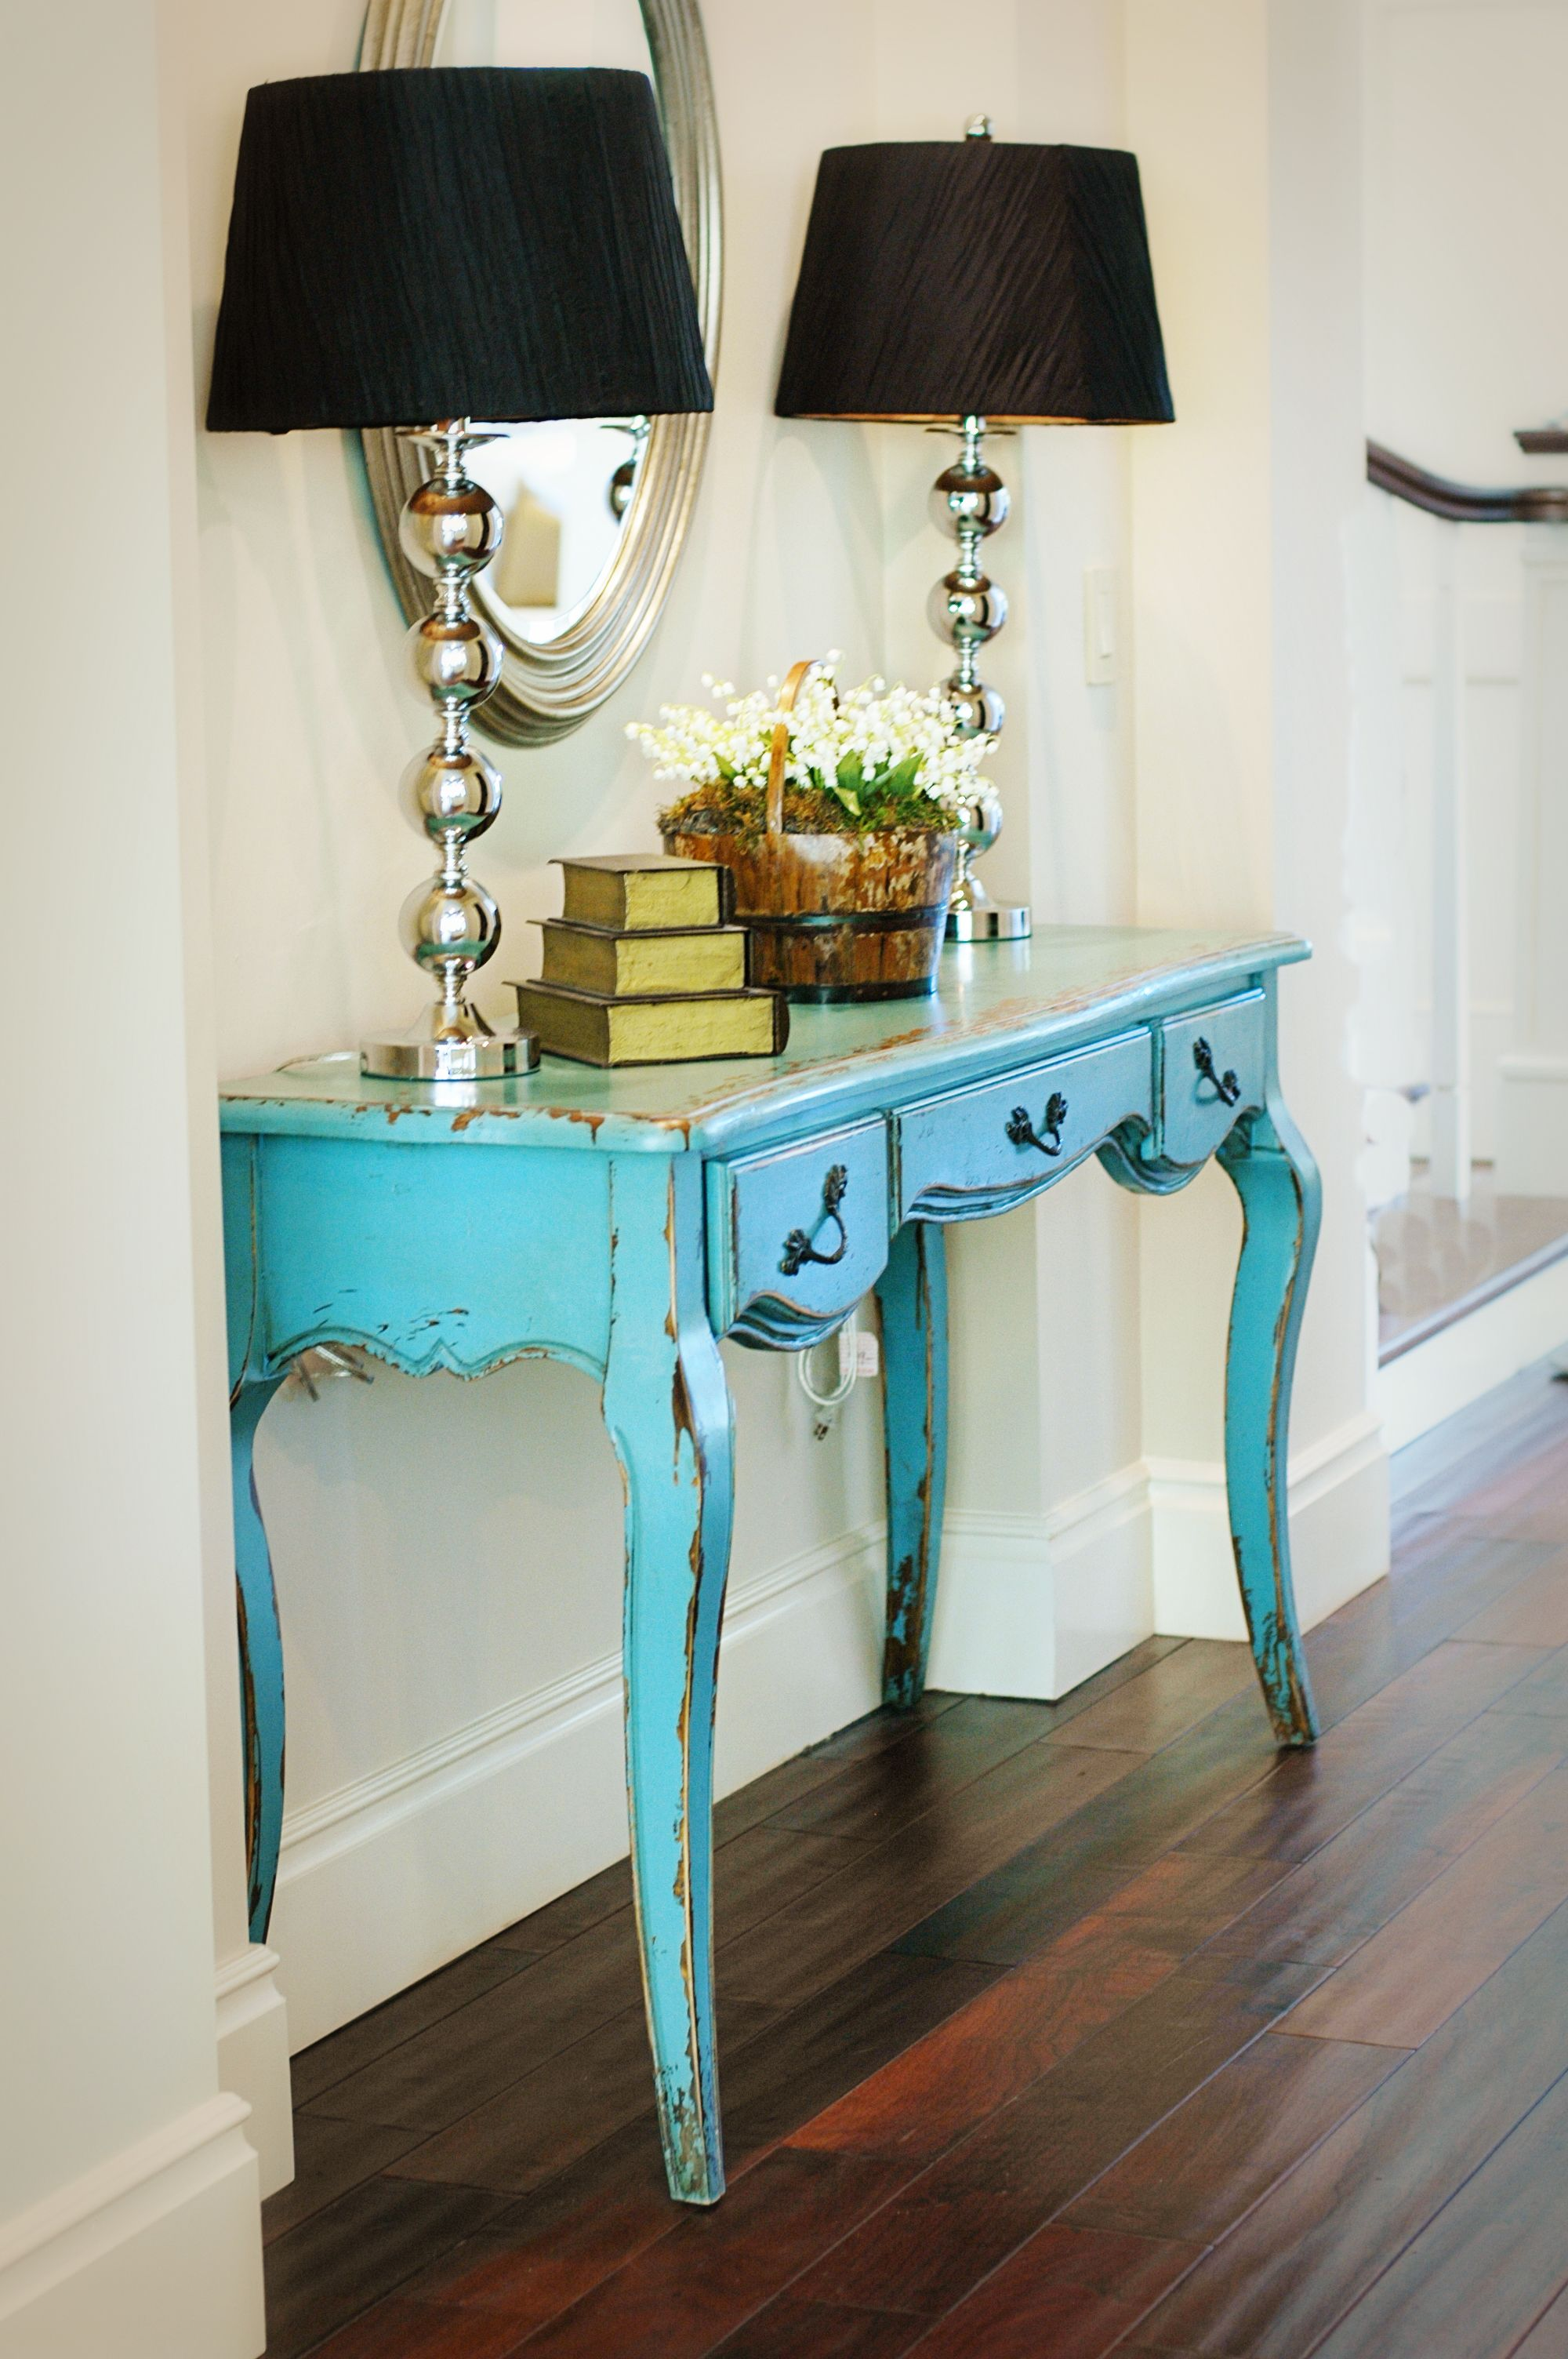 Genial Distressed Teal Table With More Modern Looking Lamps. Great Use Of Entryway  Space. Similar Lamp Can Be Found Here:  Http://www.myknobs.com/litls21157.html